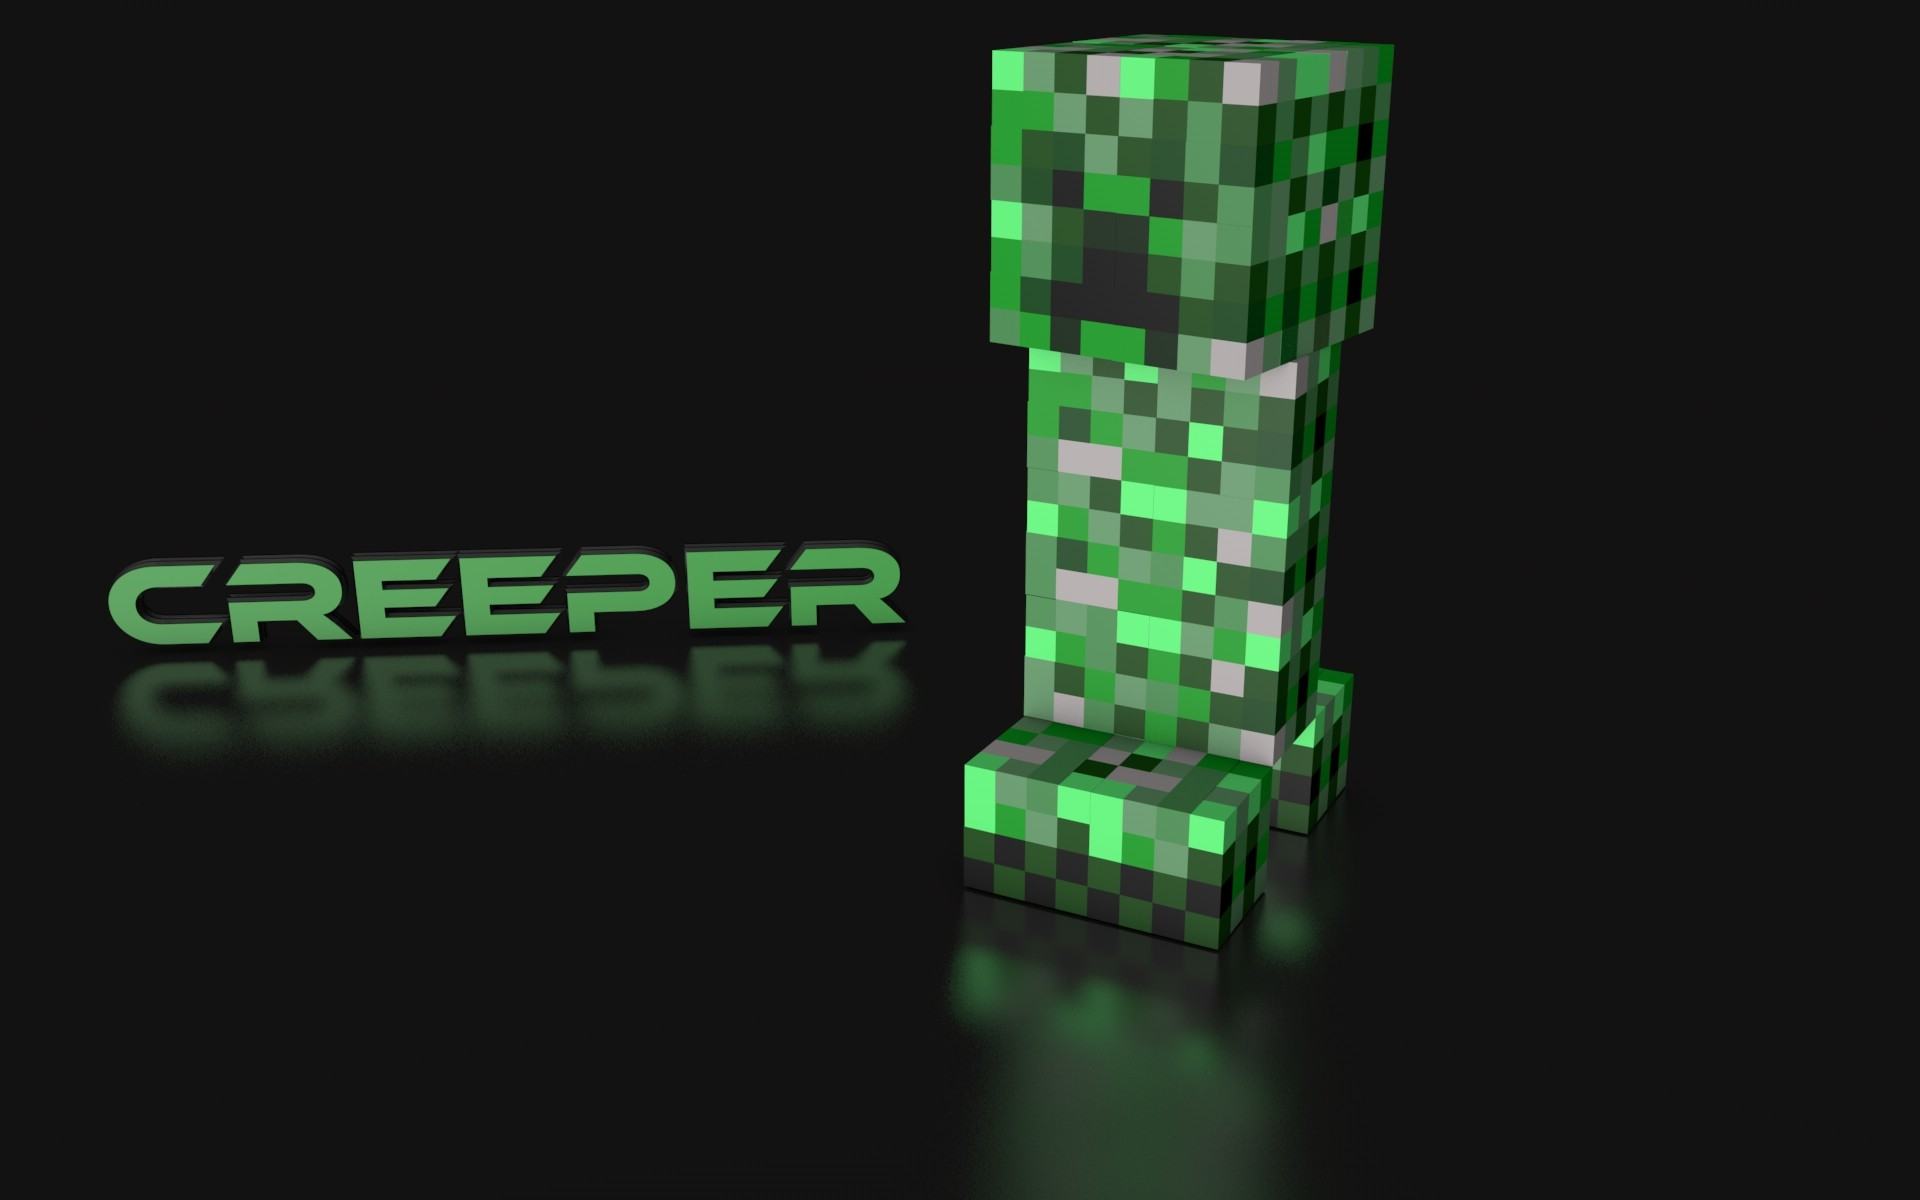 Minecraft creeper backgrounds creeper backgrounds wallpaper cave hd free minecraft wallpapers download free hd voltagebd Gallery